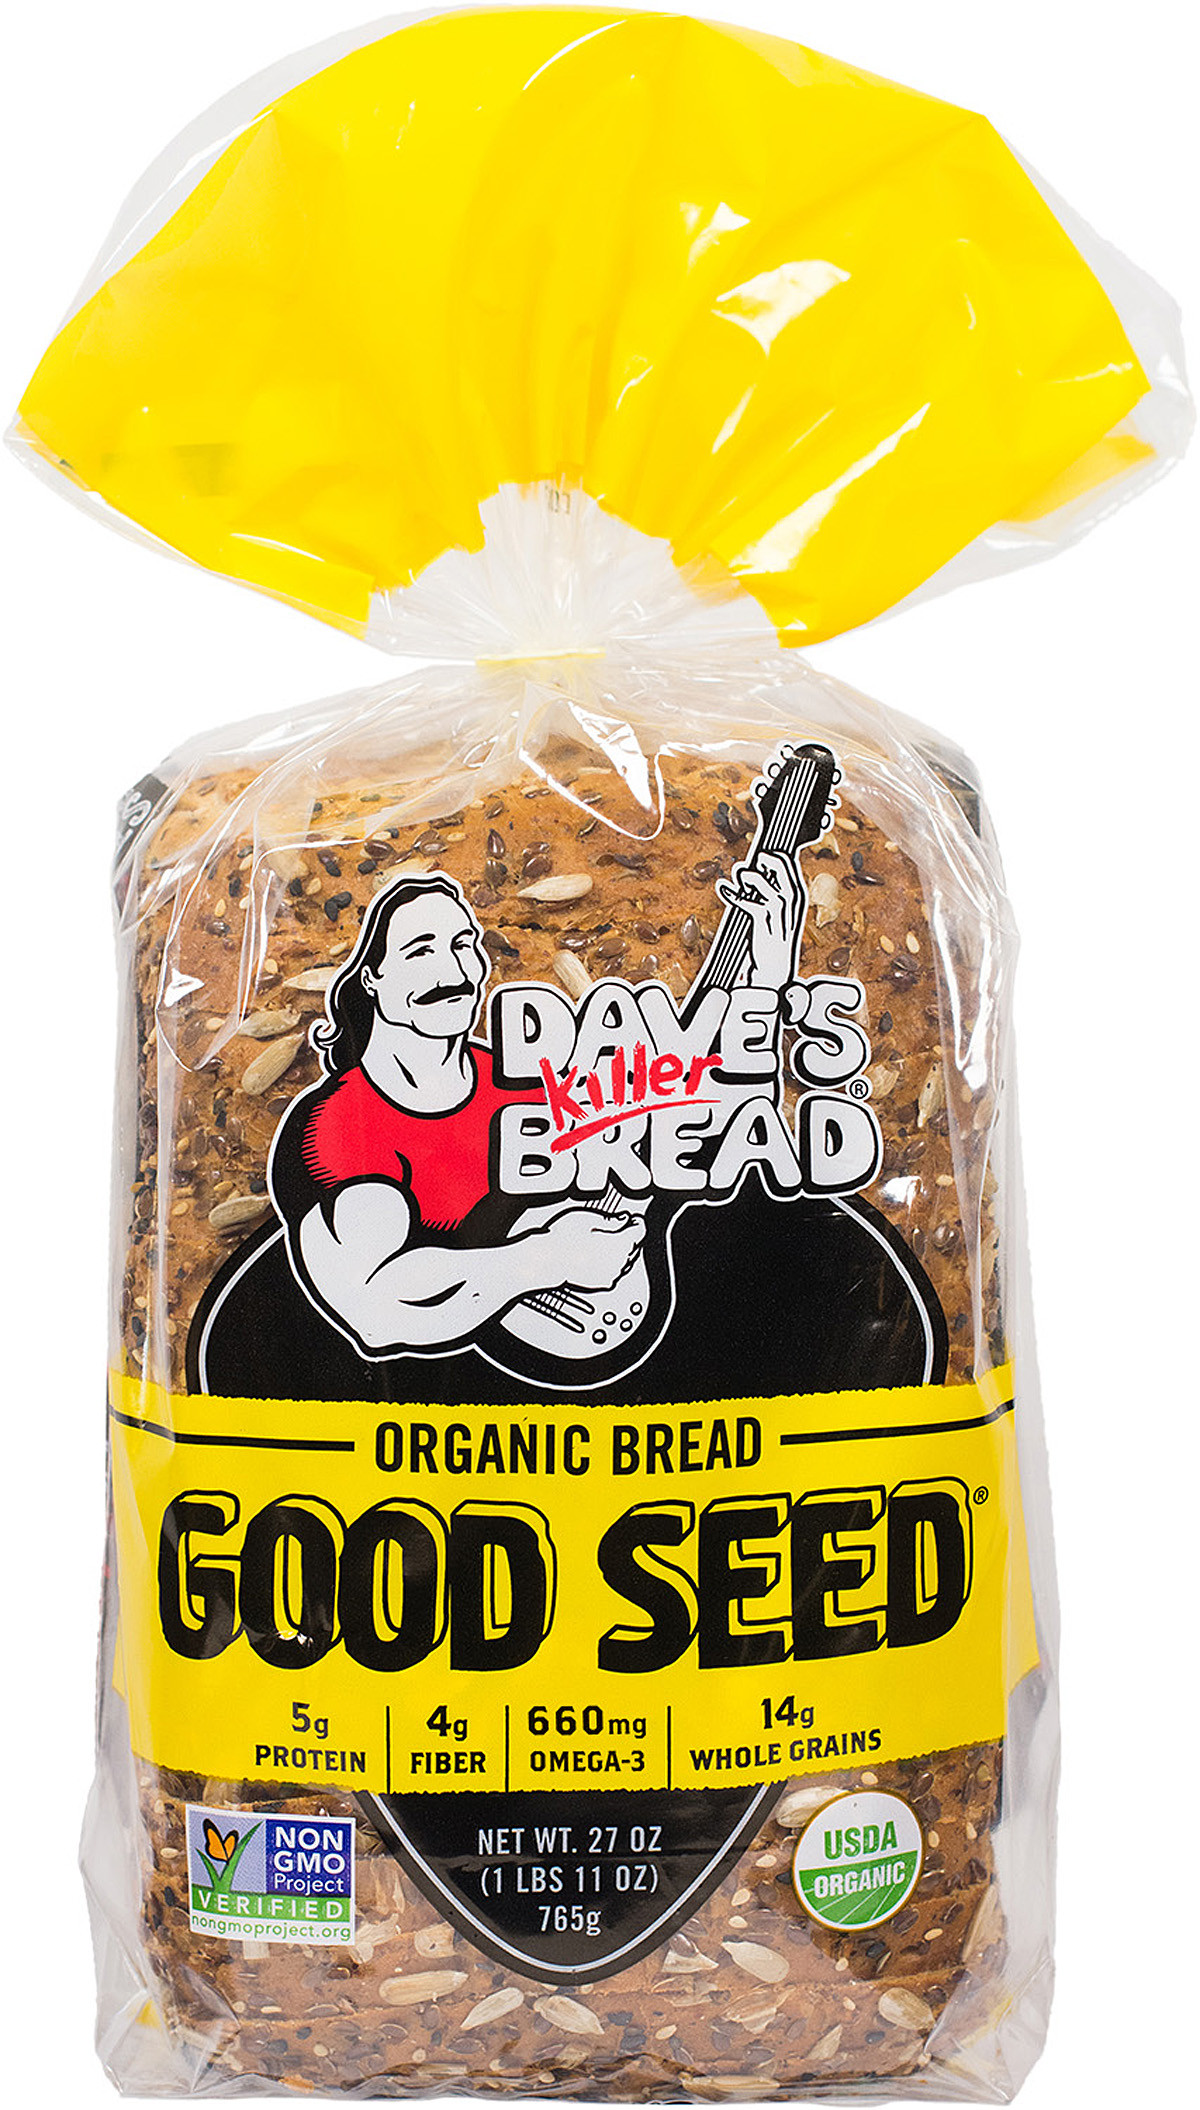 Is Dave'S Killer Bread Healthy  Build a better for you grilled cheese with gluten free